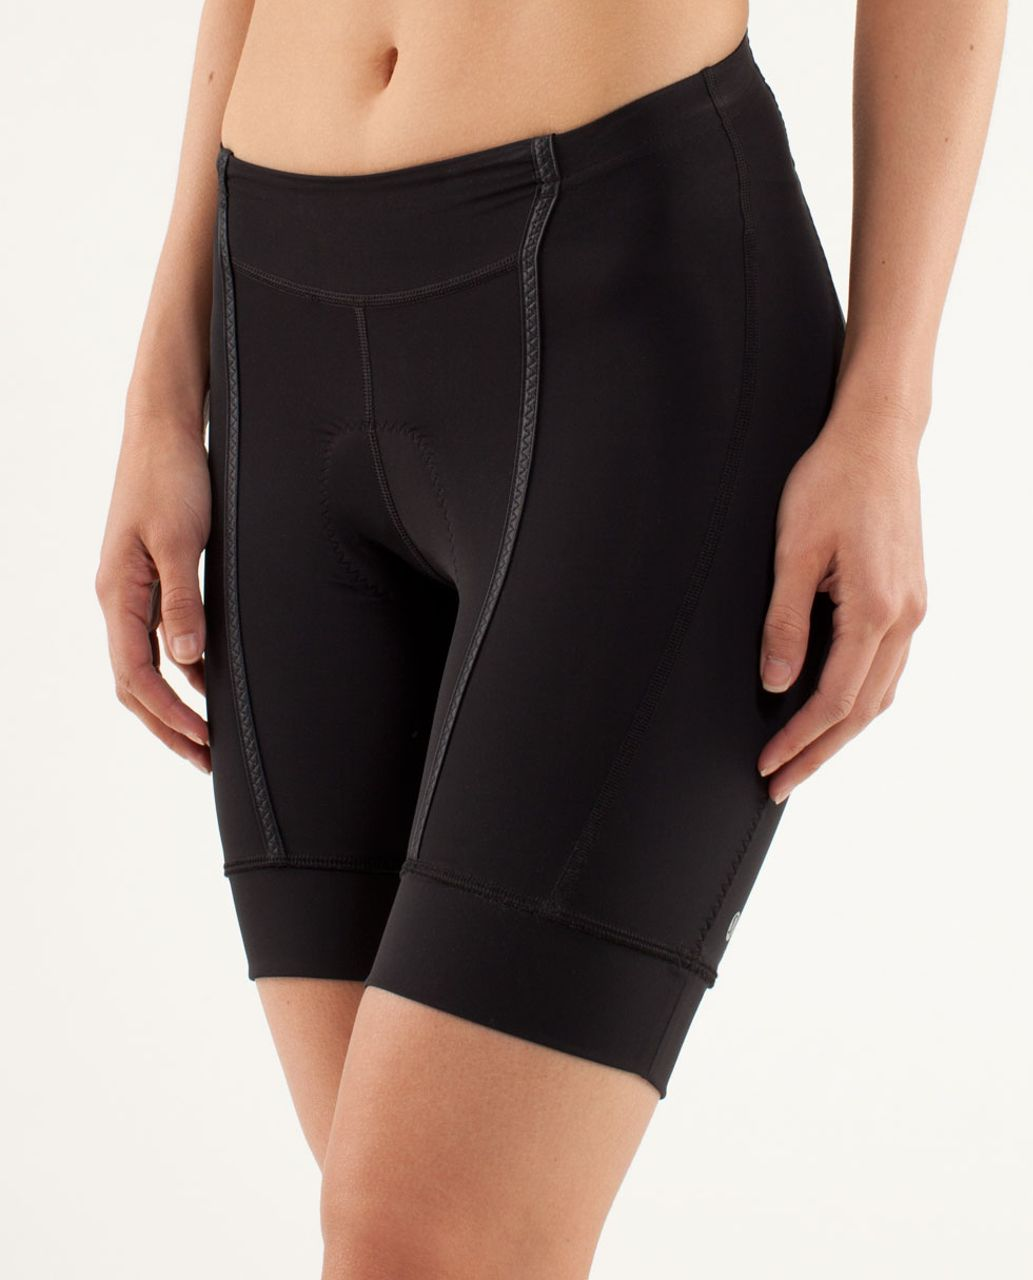 Lululemon Paceline Short - Black